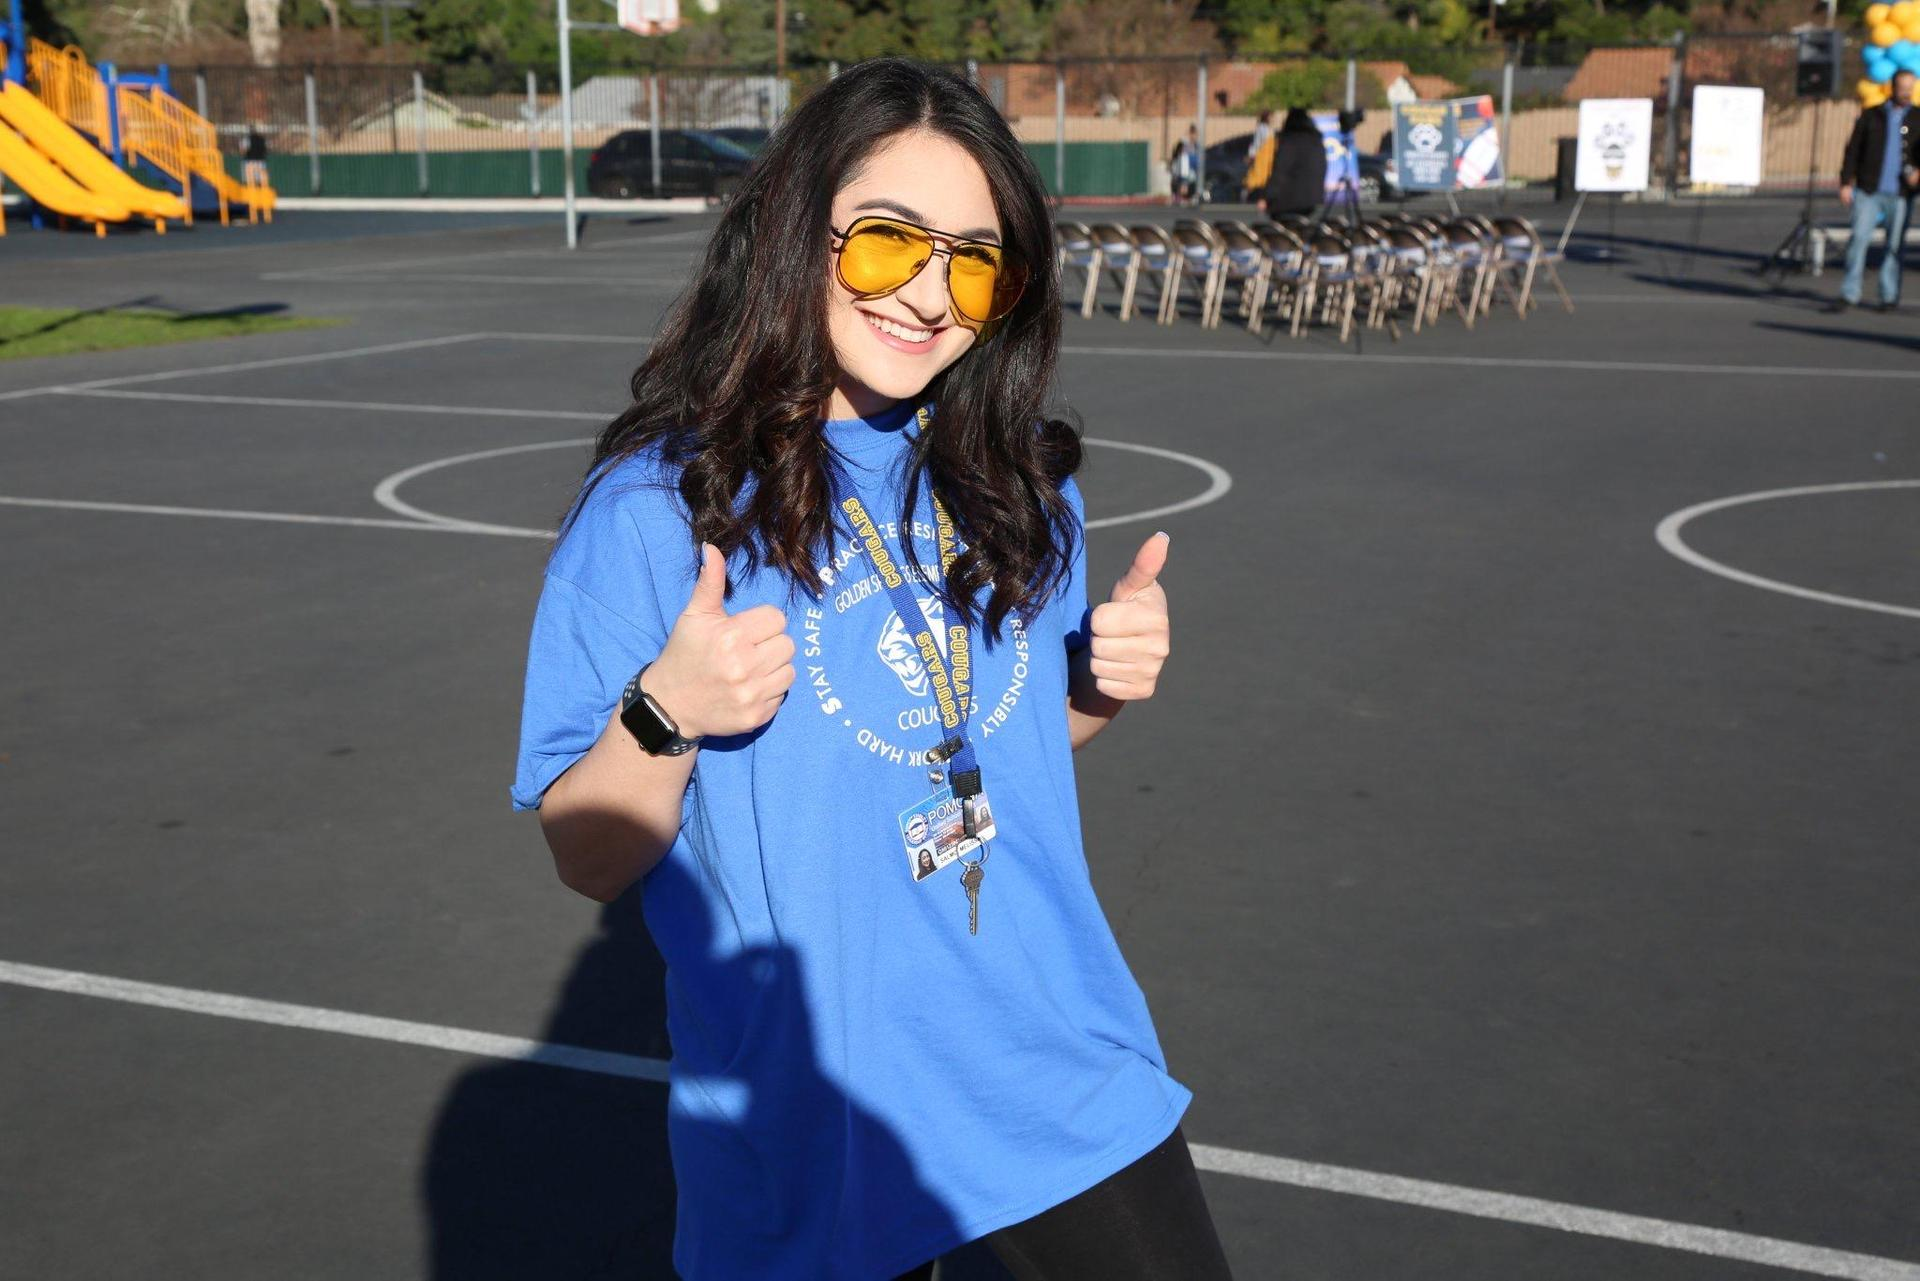 Picture of School Counselor doing a Thumbs Up